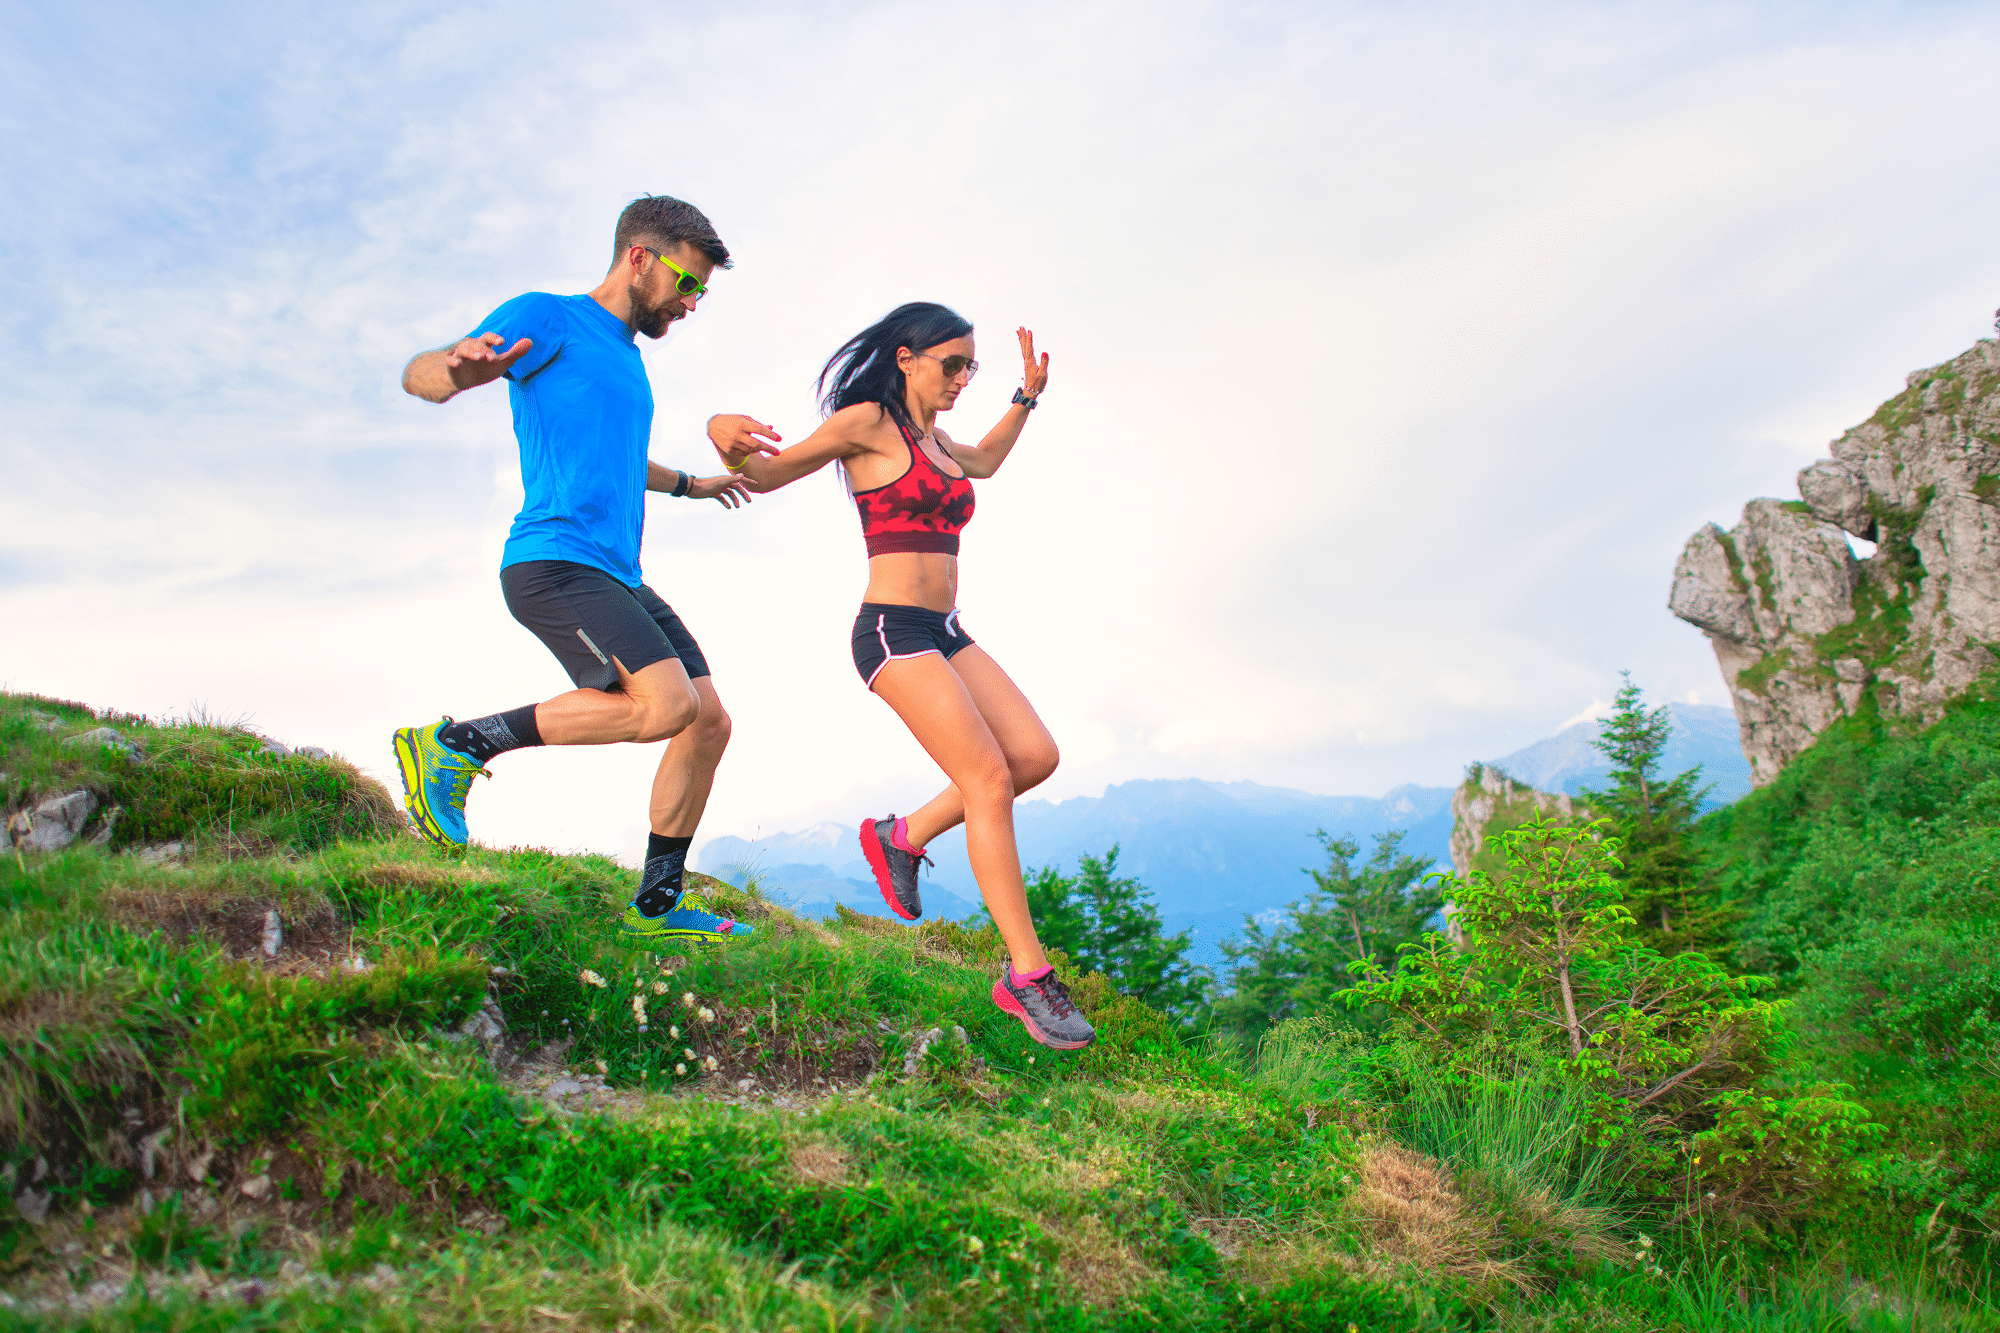 CBD Oil For Athletes – Is It An Athletic Supplement?